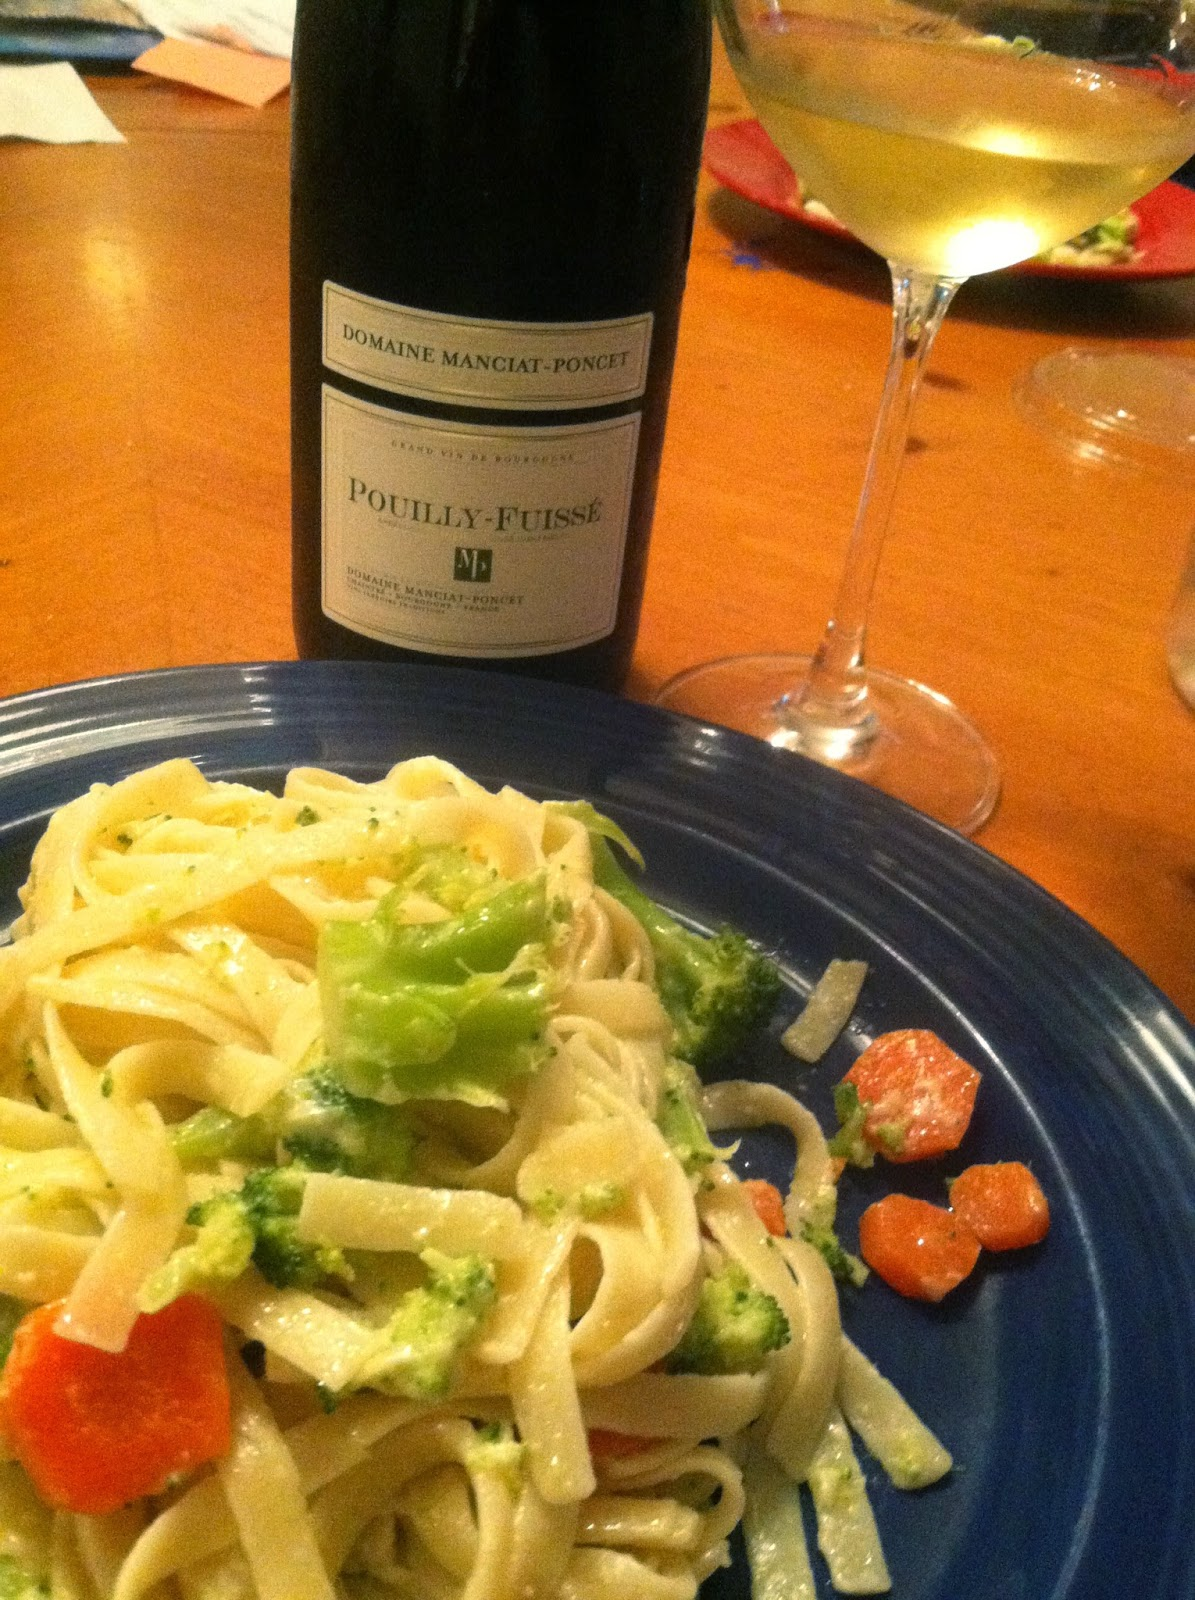 Domaine Manciat-Poncet Pouilly-Fuissé, a nice pairing with creamy fettuccine.